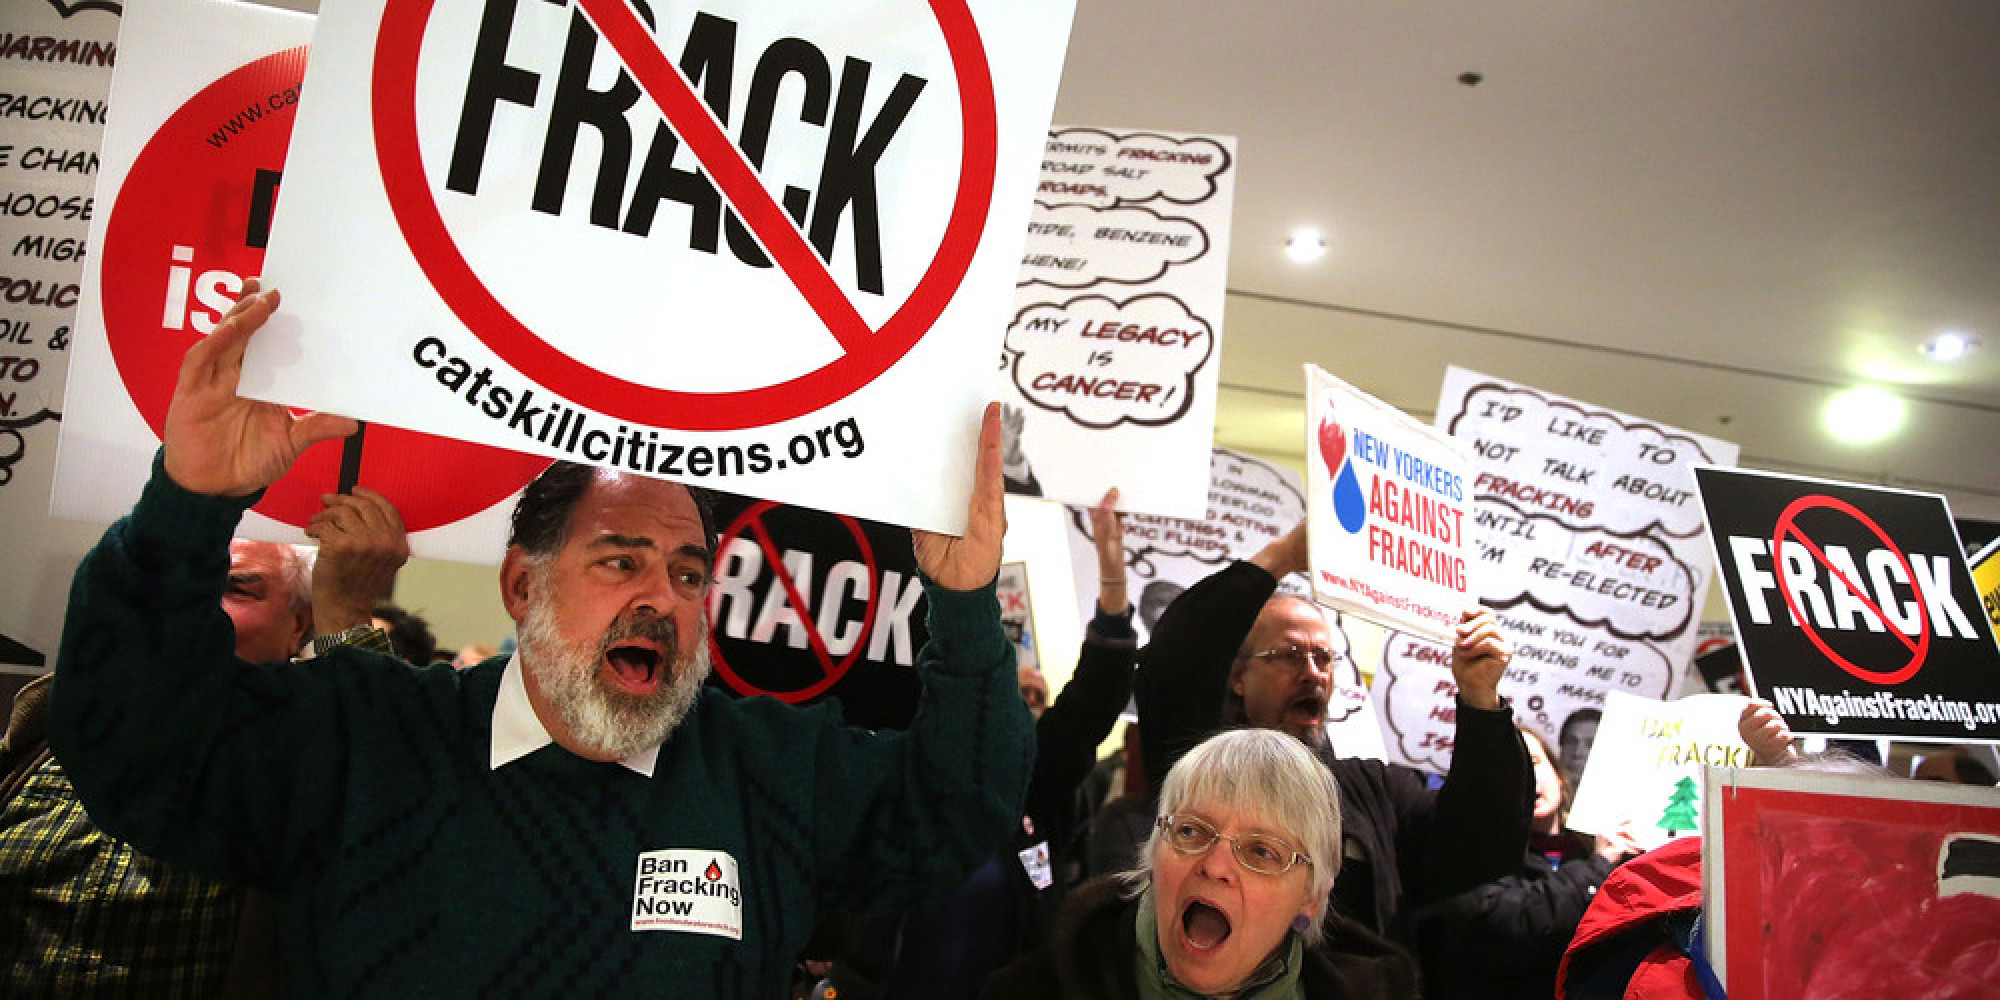 Local Anti-Fracking Activists Get Financial Assist From MoveOn